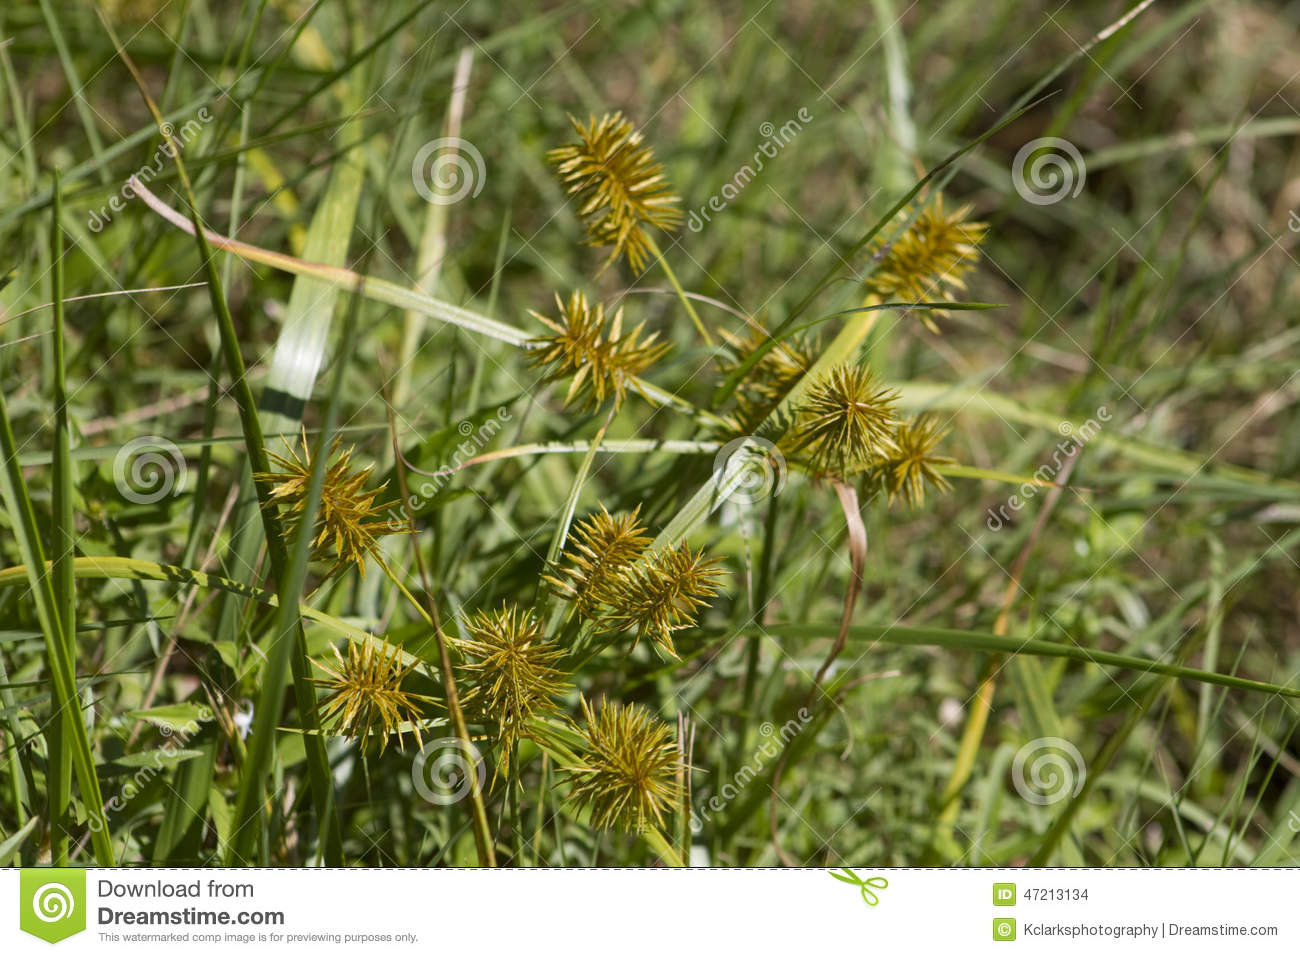 How to get rid of nut grass - Yellow Nutsedge Nutgrass Cyperus Esculentus Stock Photo Image